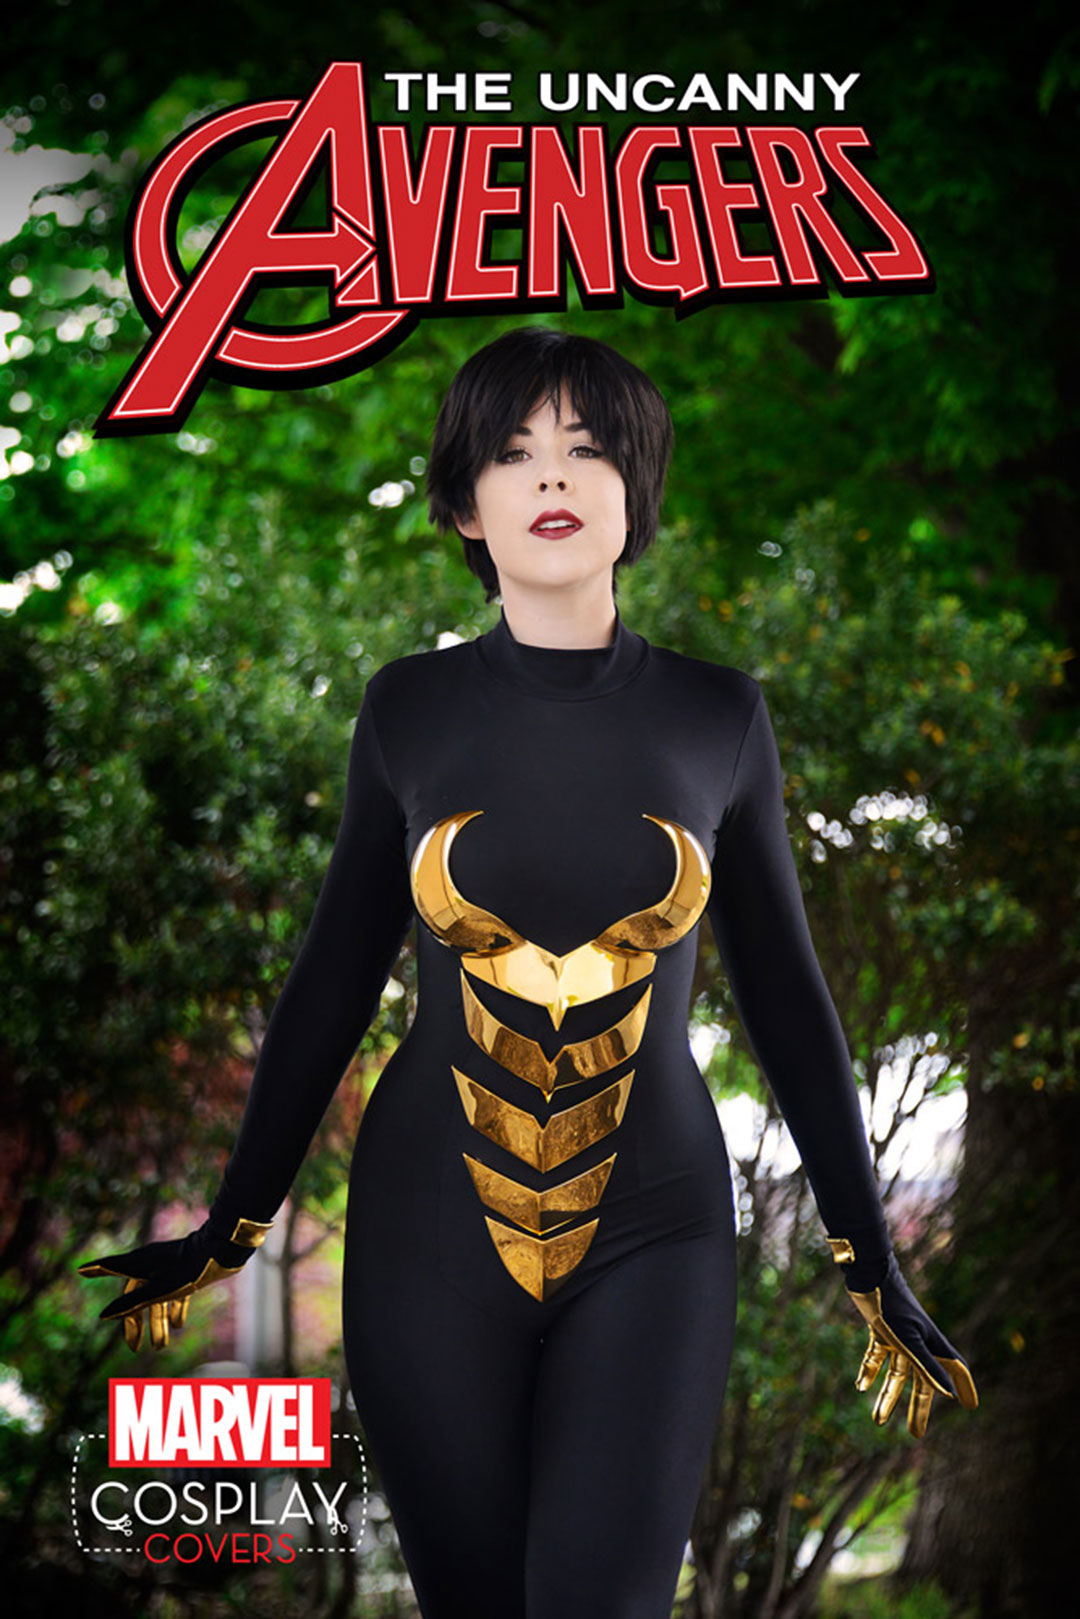 Couverture-Marvel-cosplay (8)